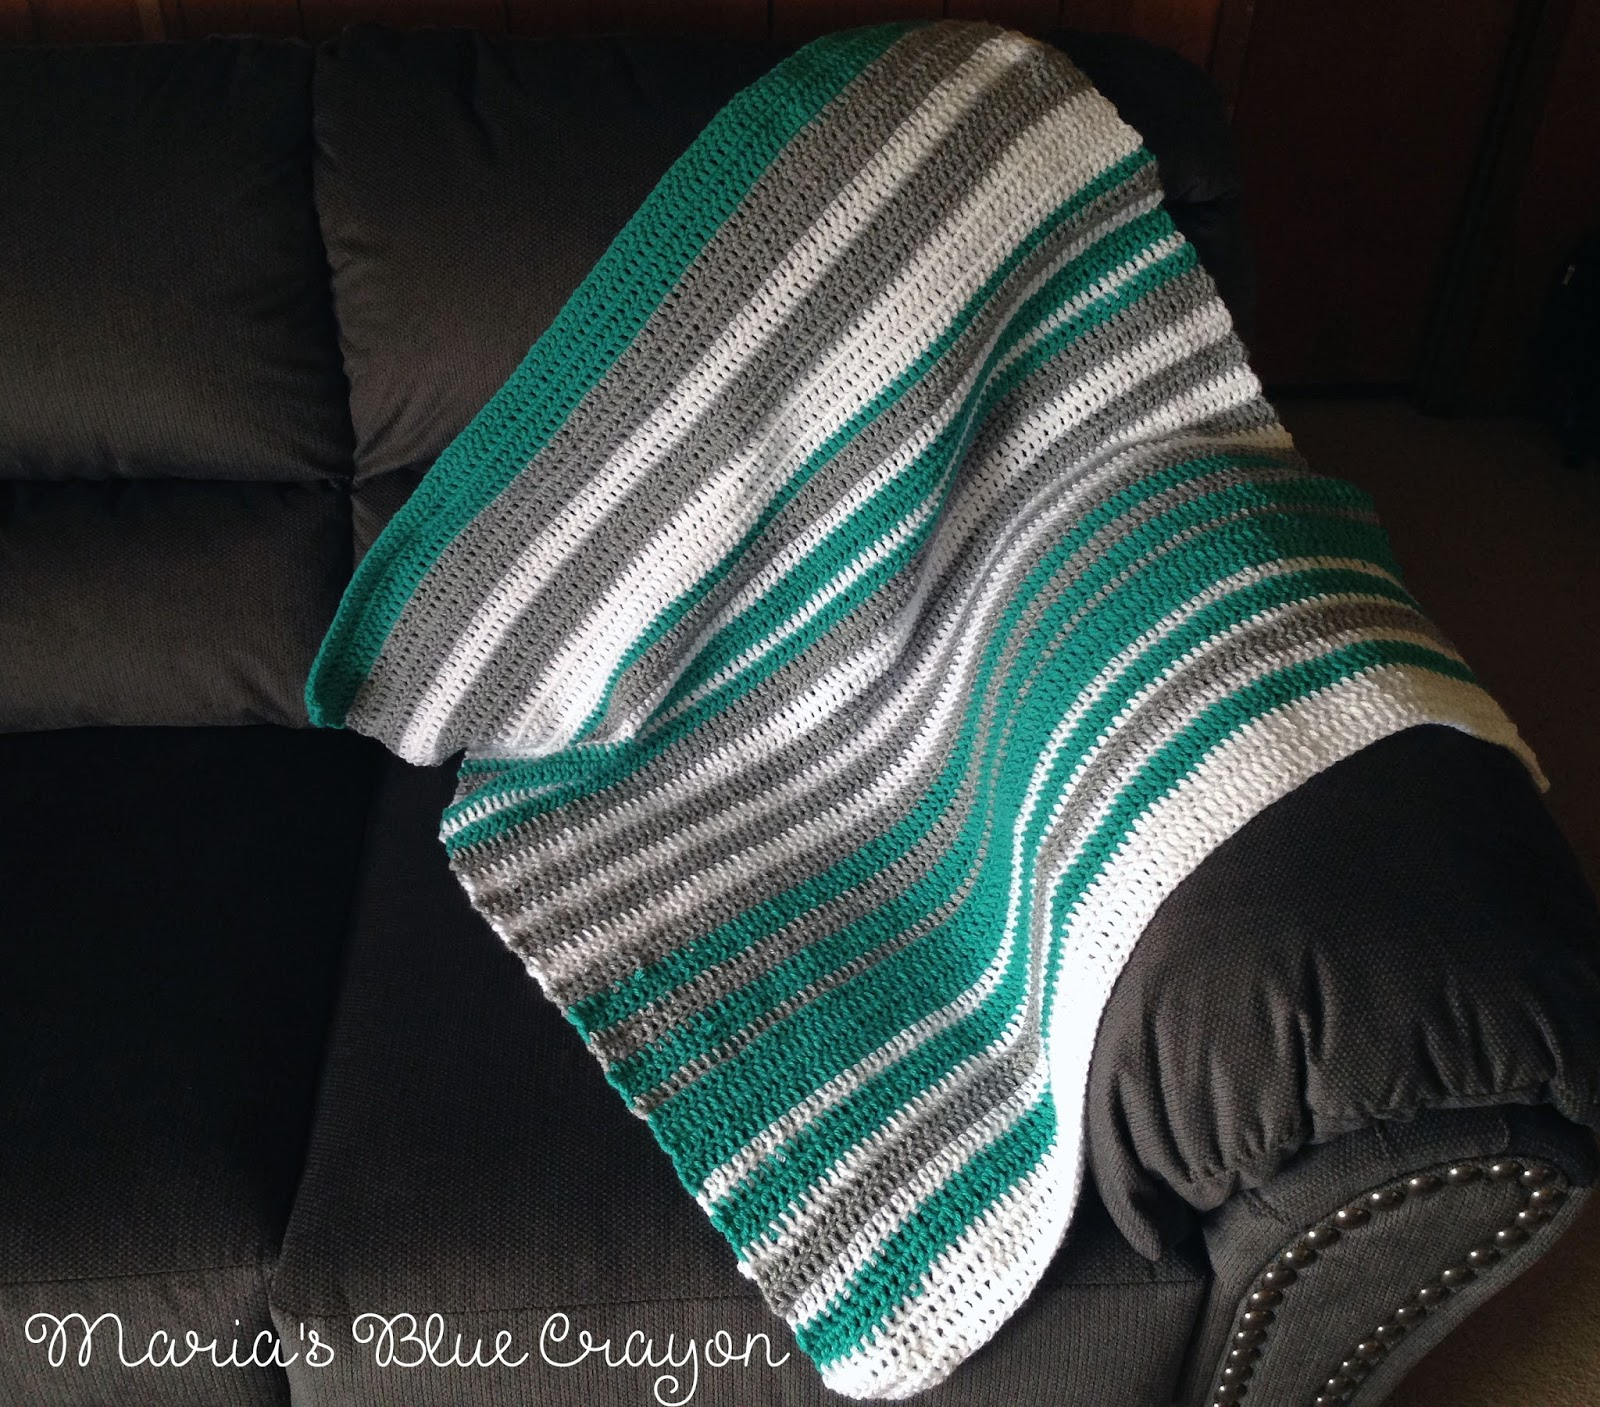 How To Guide To Designing Your Own Crochet Striped Blanket Marias